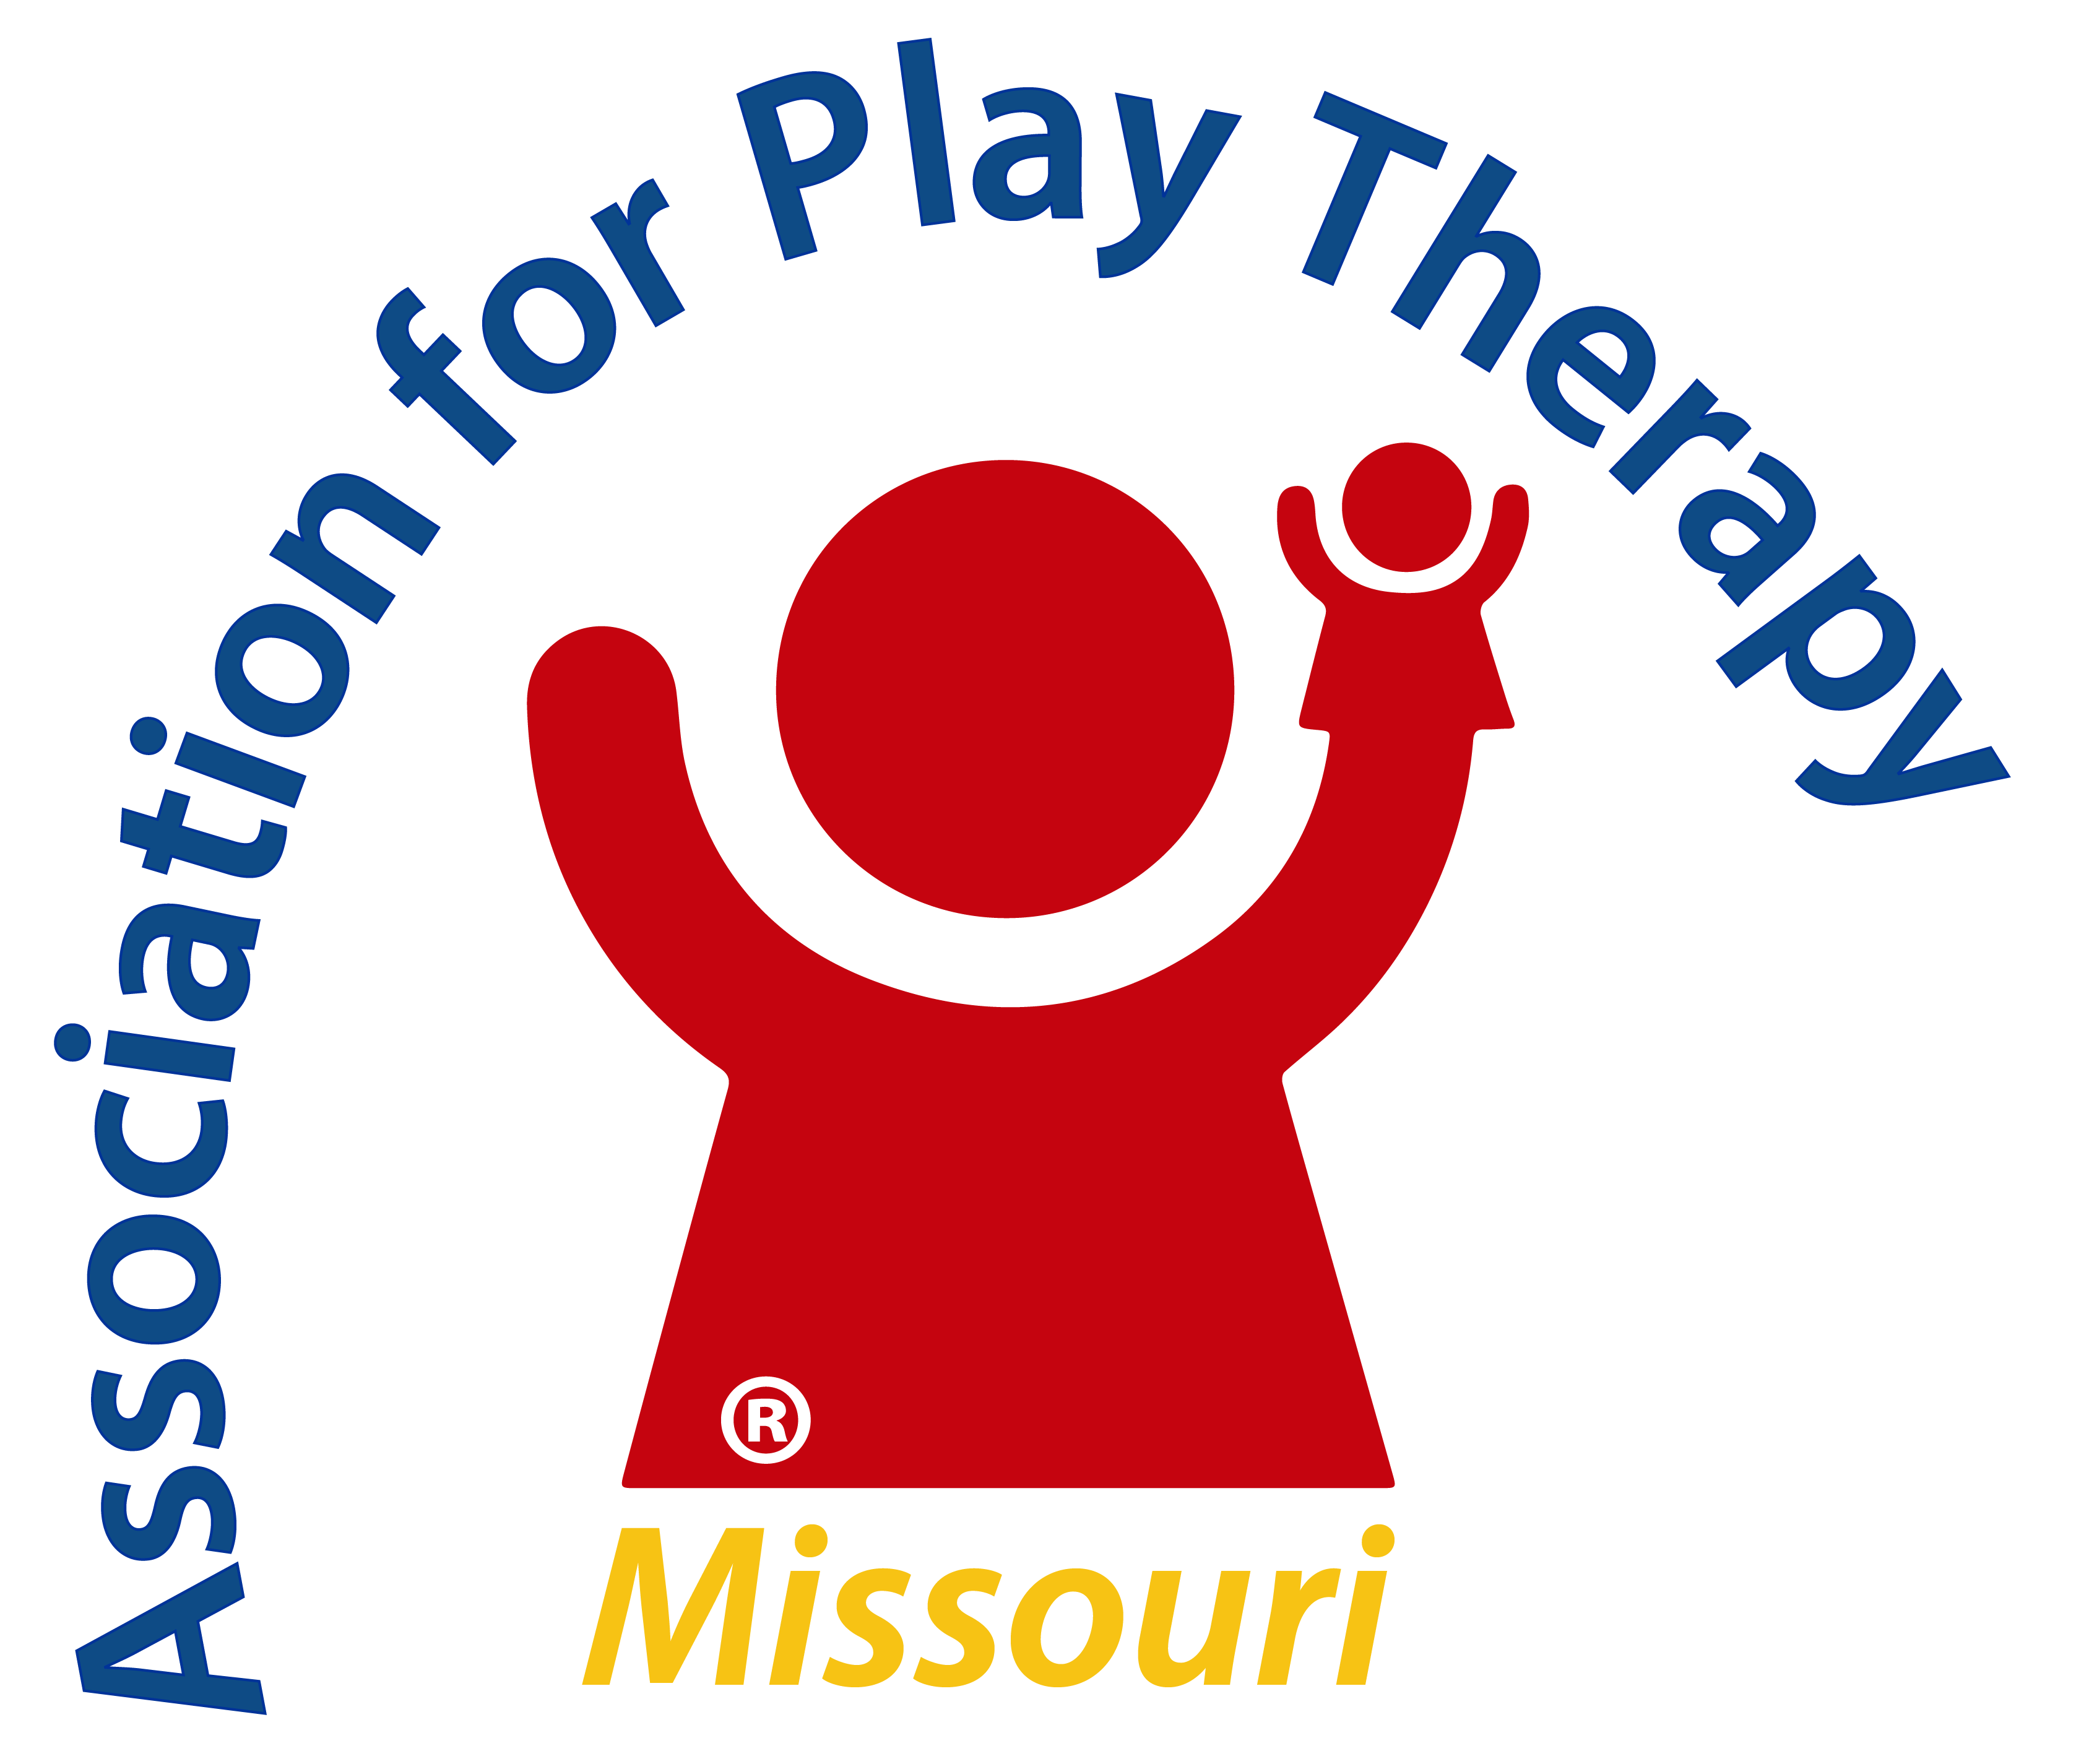 Missouri Association of Play Therapy